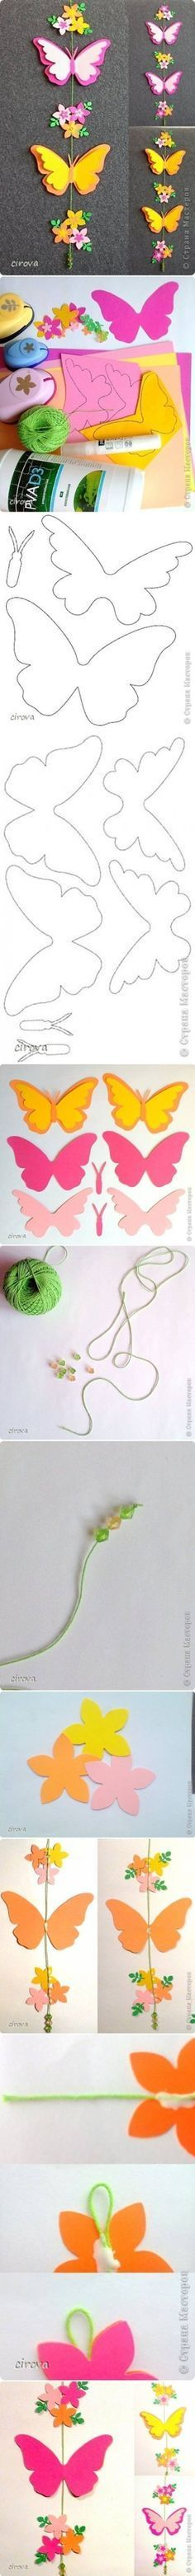 Ideas Origami Papillon Guirlande For 2019 Hobbies And Crafts, Diy And Crafts, Crafts For Kids, Arts And Crafts, Butterfly Mobile, Butterfly Crafts, Origami Butterfly, Butterfly Pendant, Butterfly Ornaments